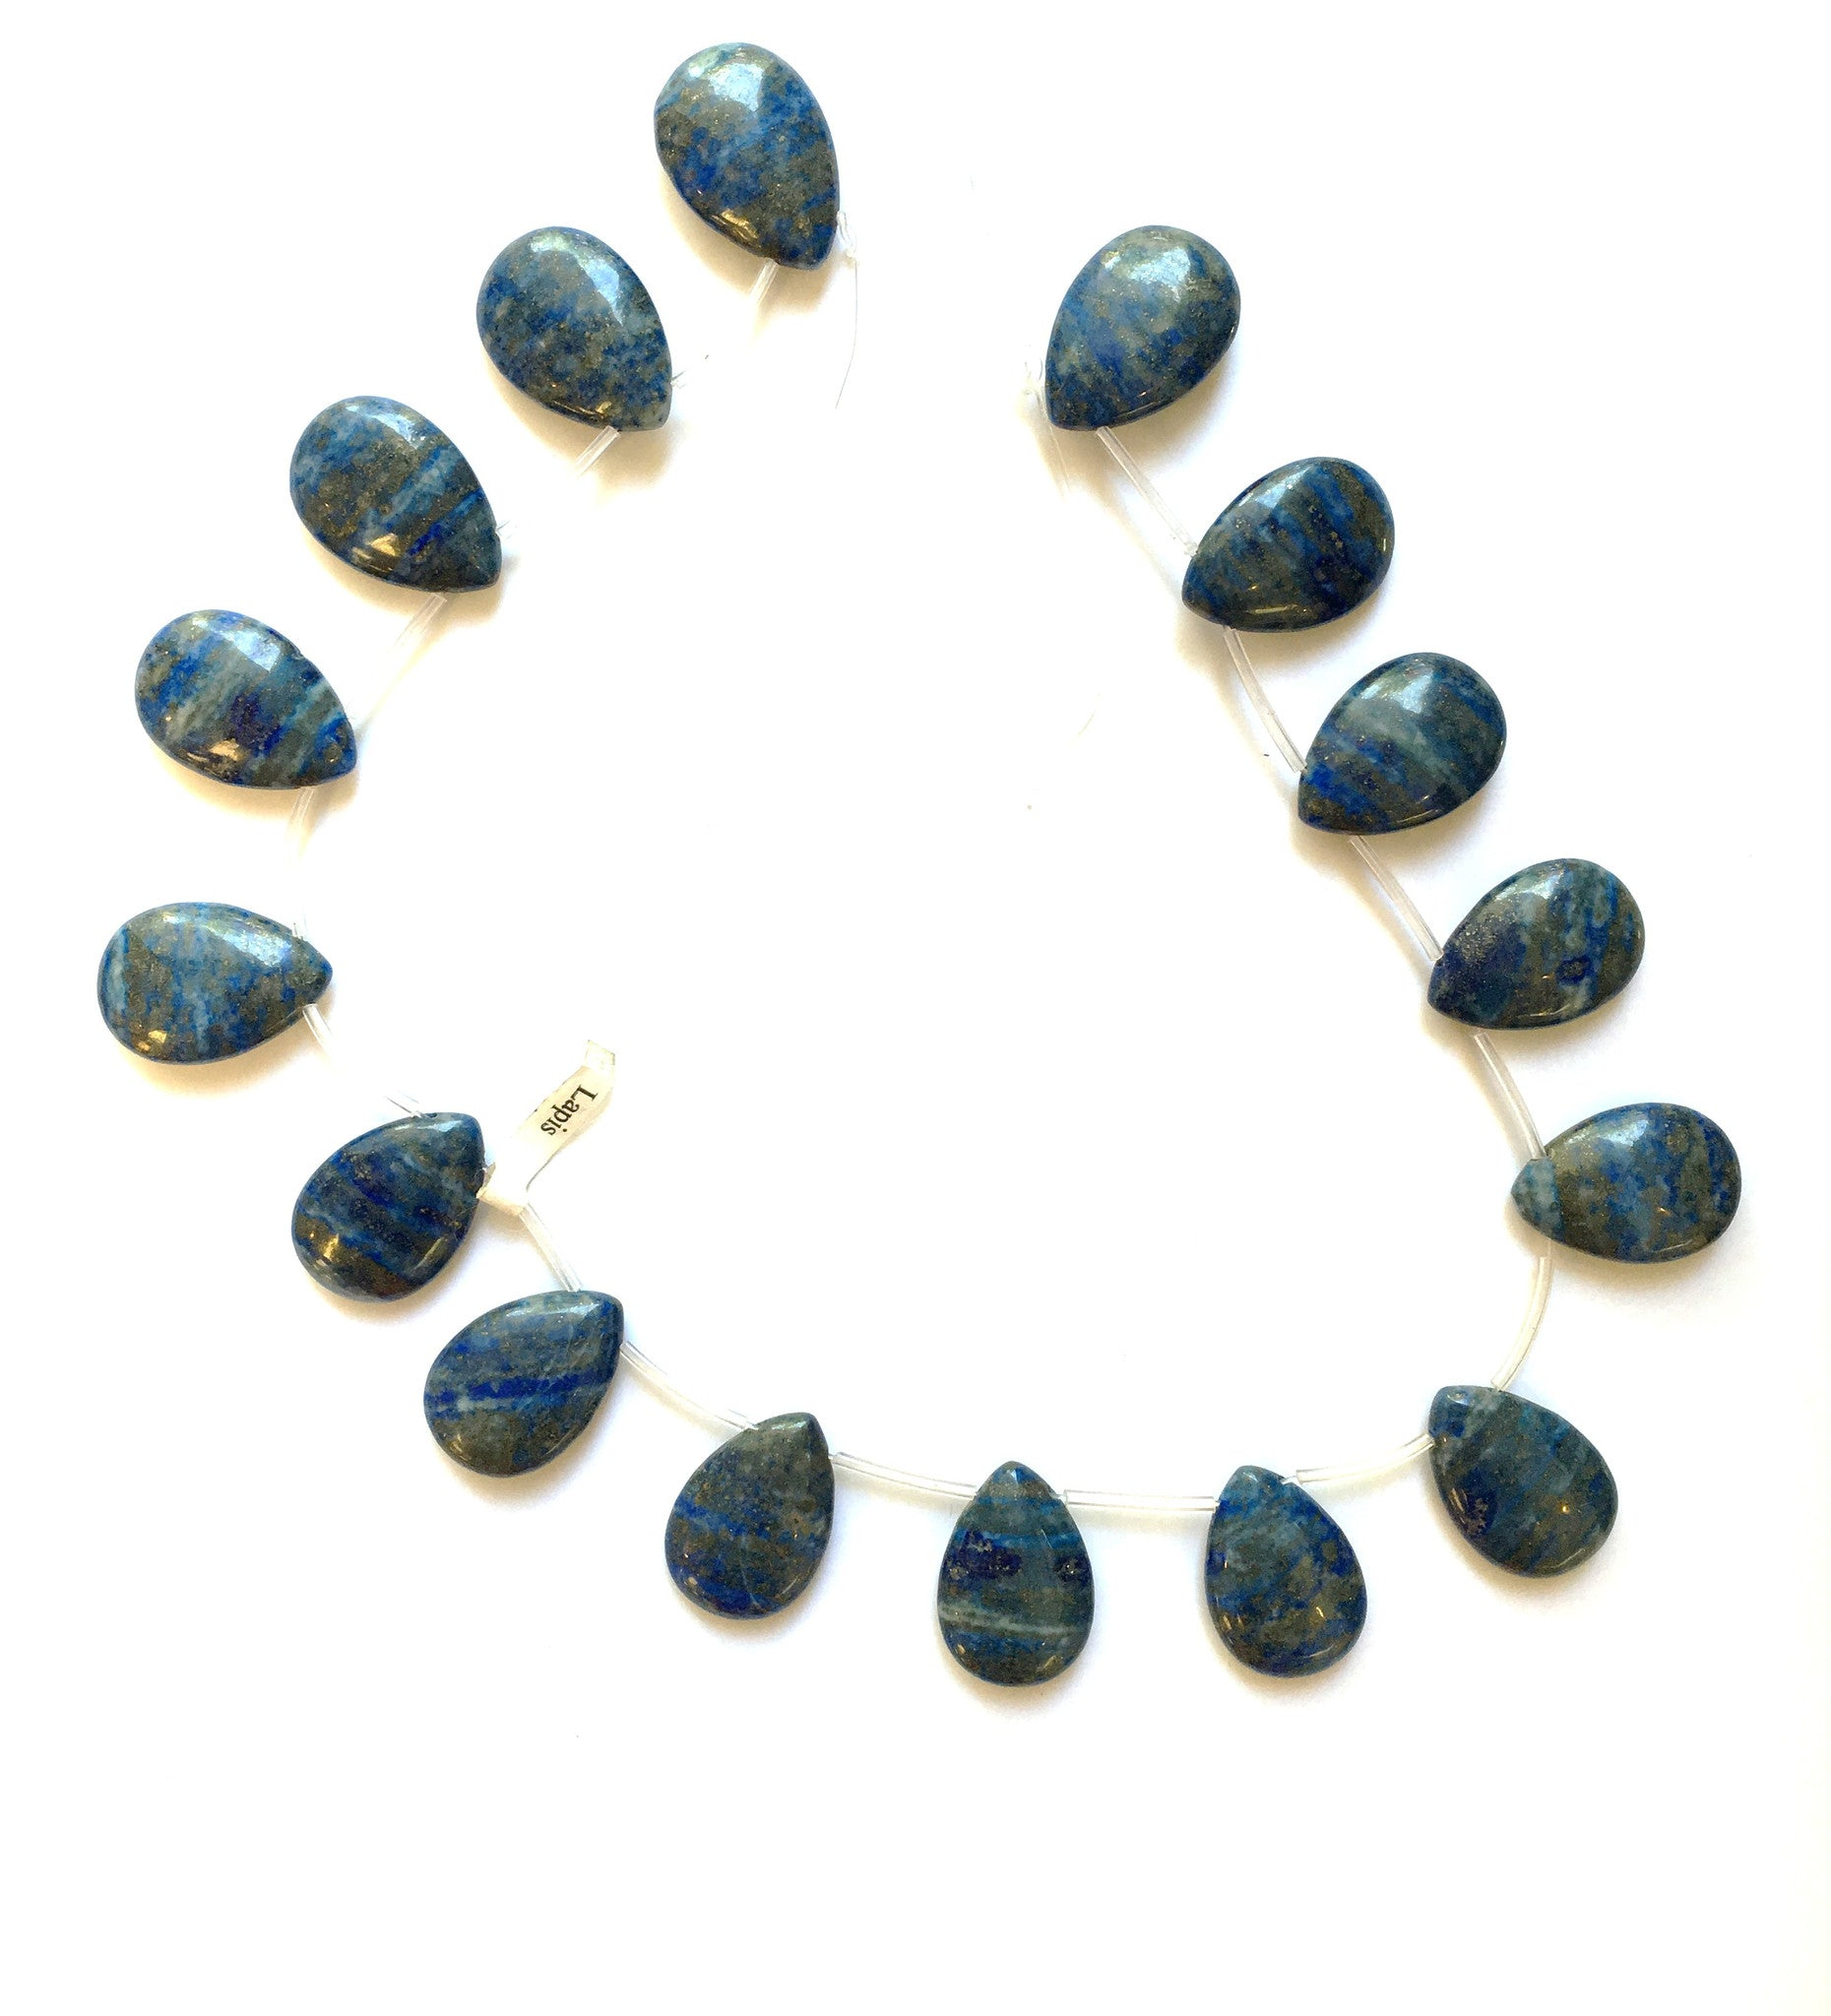 SW000096 - Stone Top Drilled Tear Drop- Lapis Lazuli 40x30mm (6Pcs)